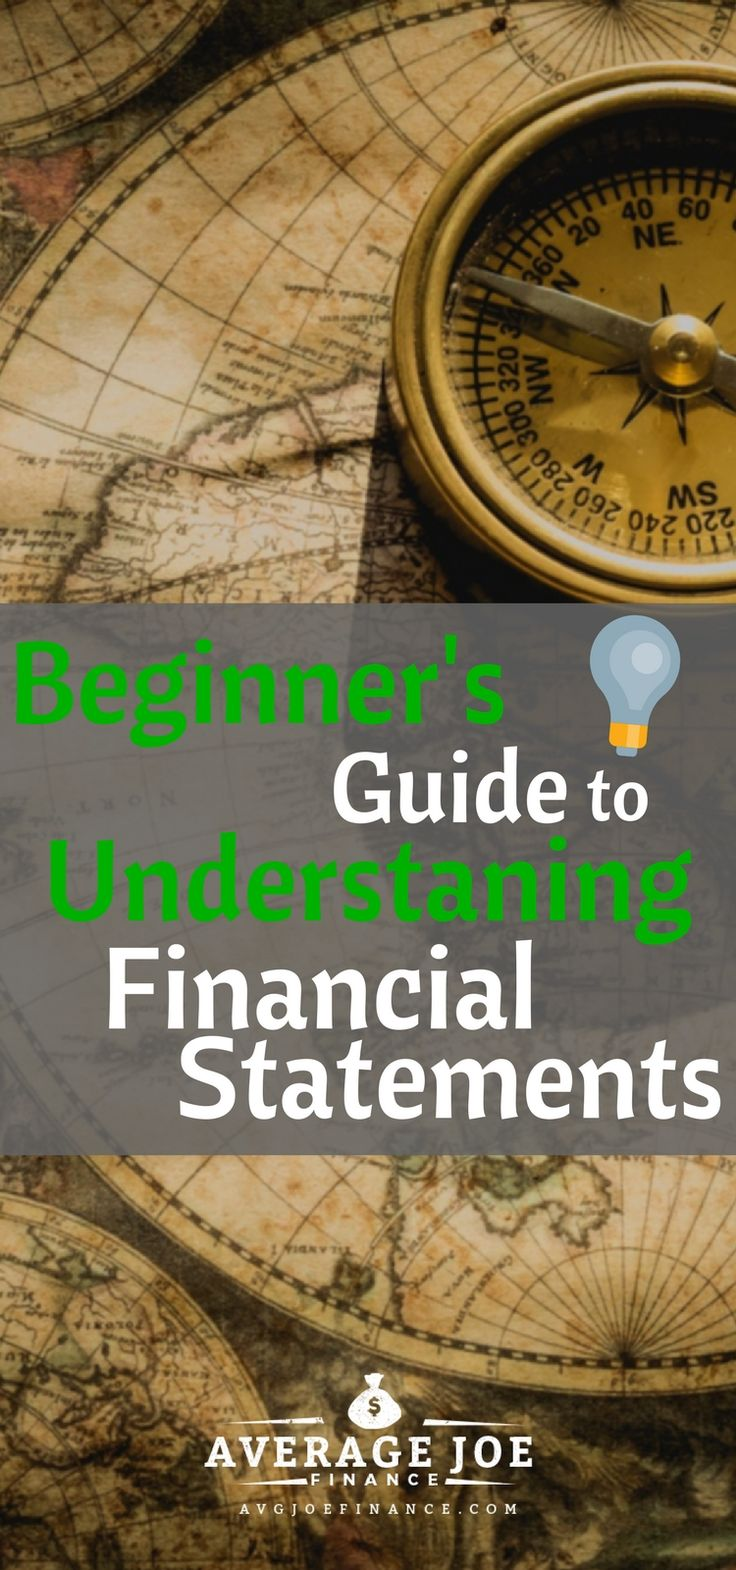 This is the most comprehensive guide I've found on financial analysis for beginners.  If covers everything you need to look out for before investing in a company.